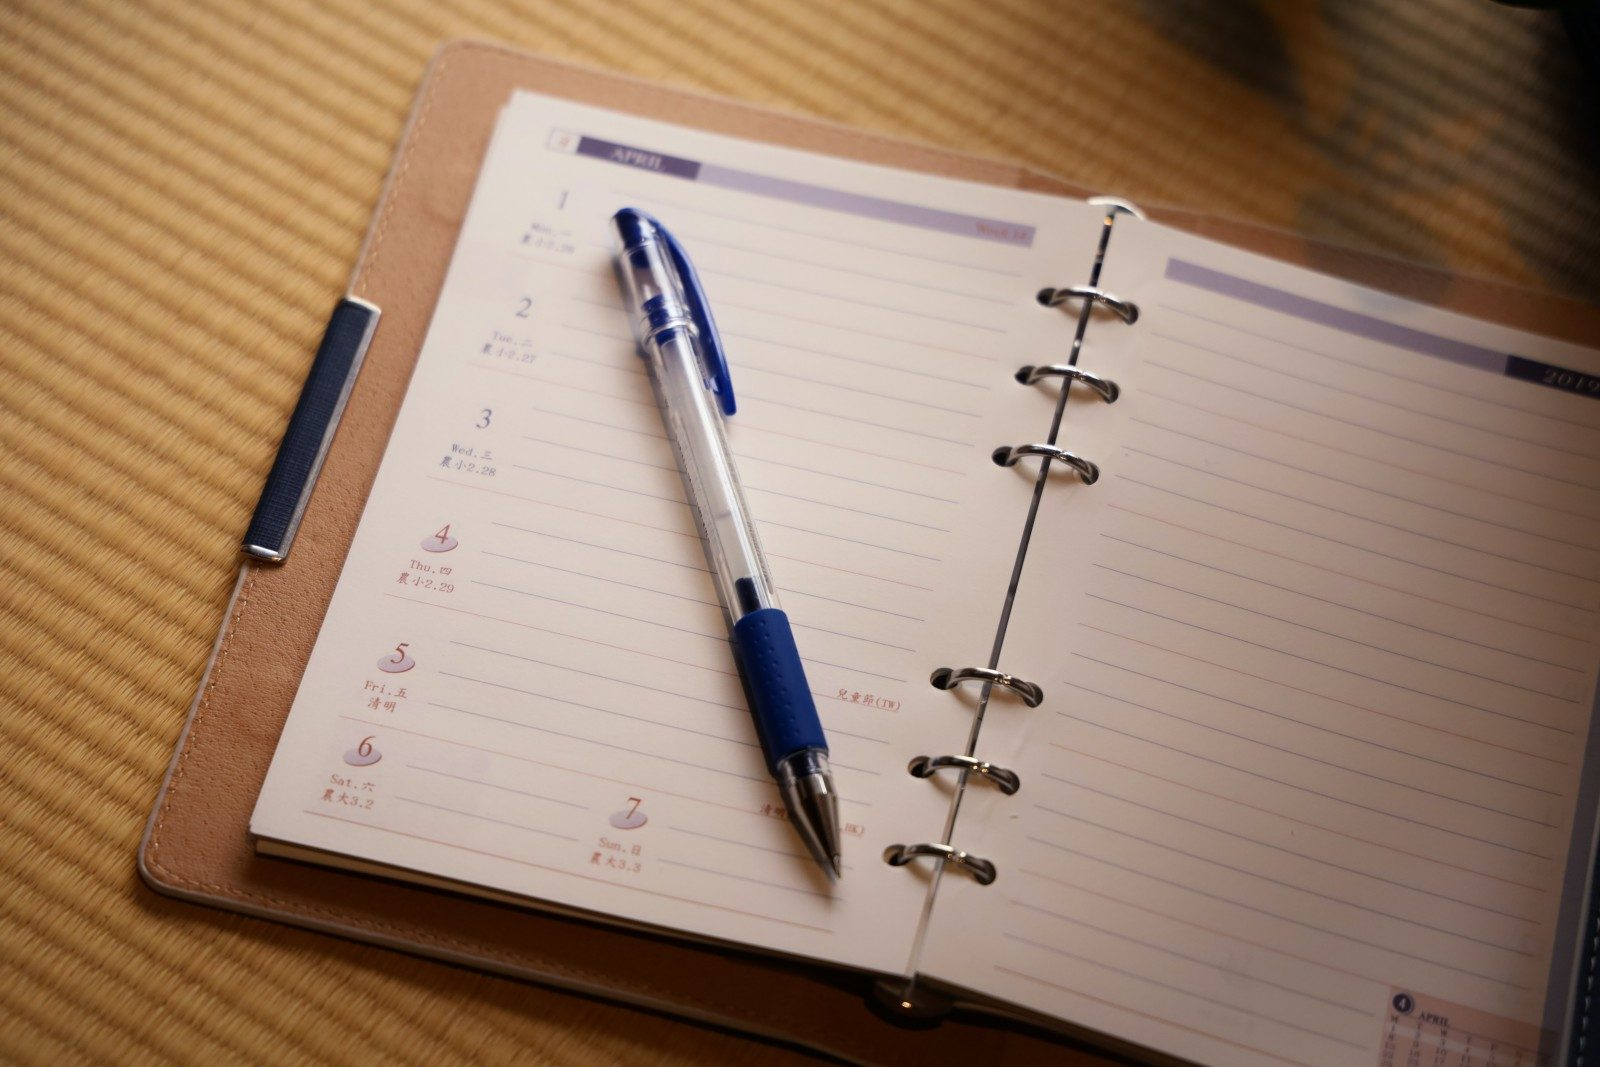 blue click pen on white ruled paper